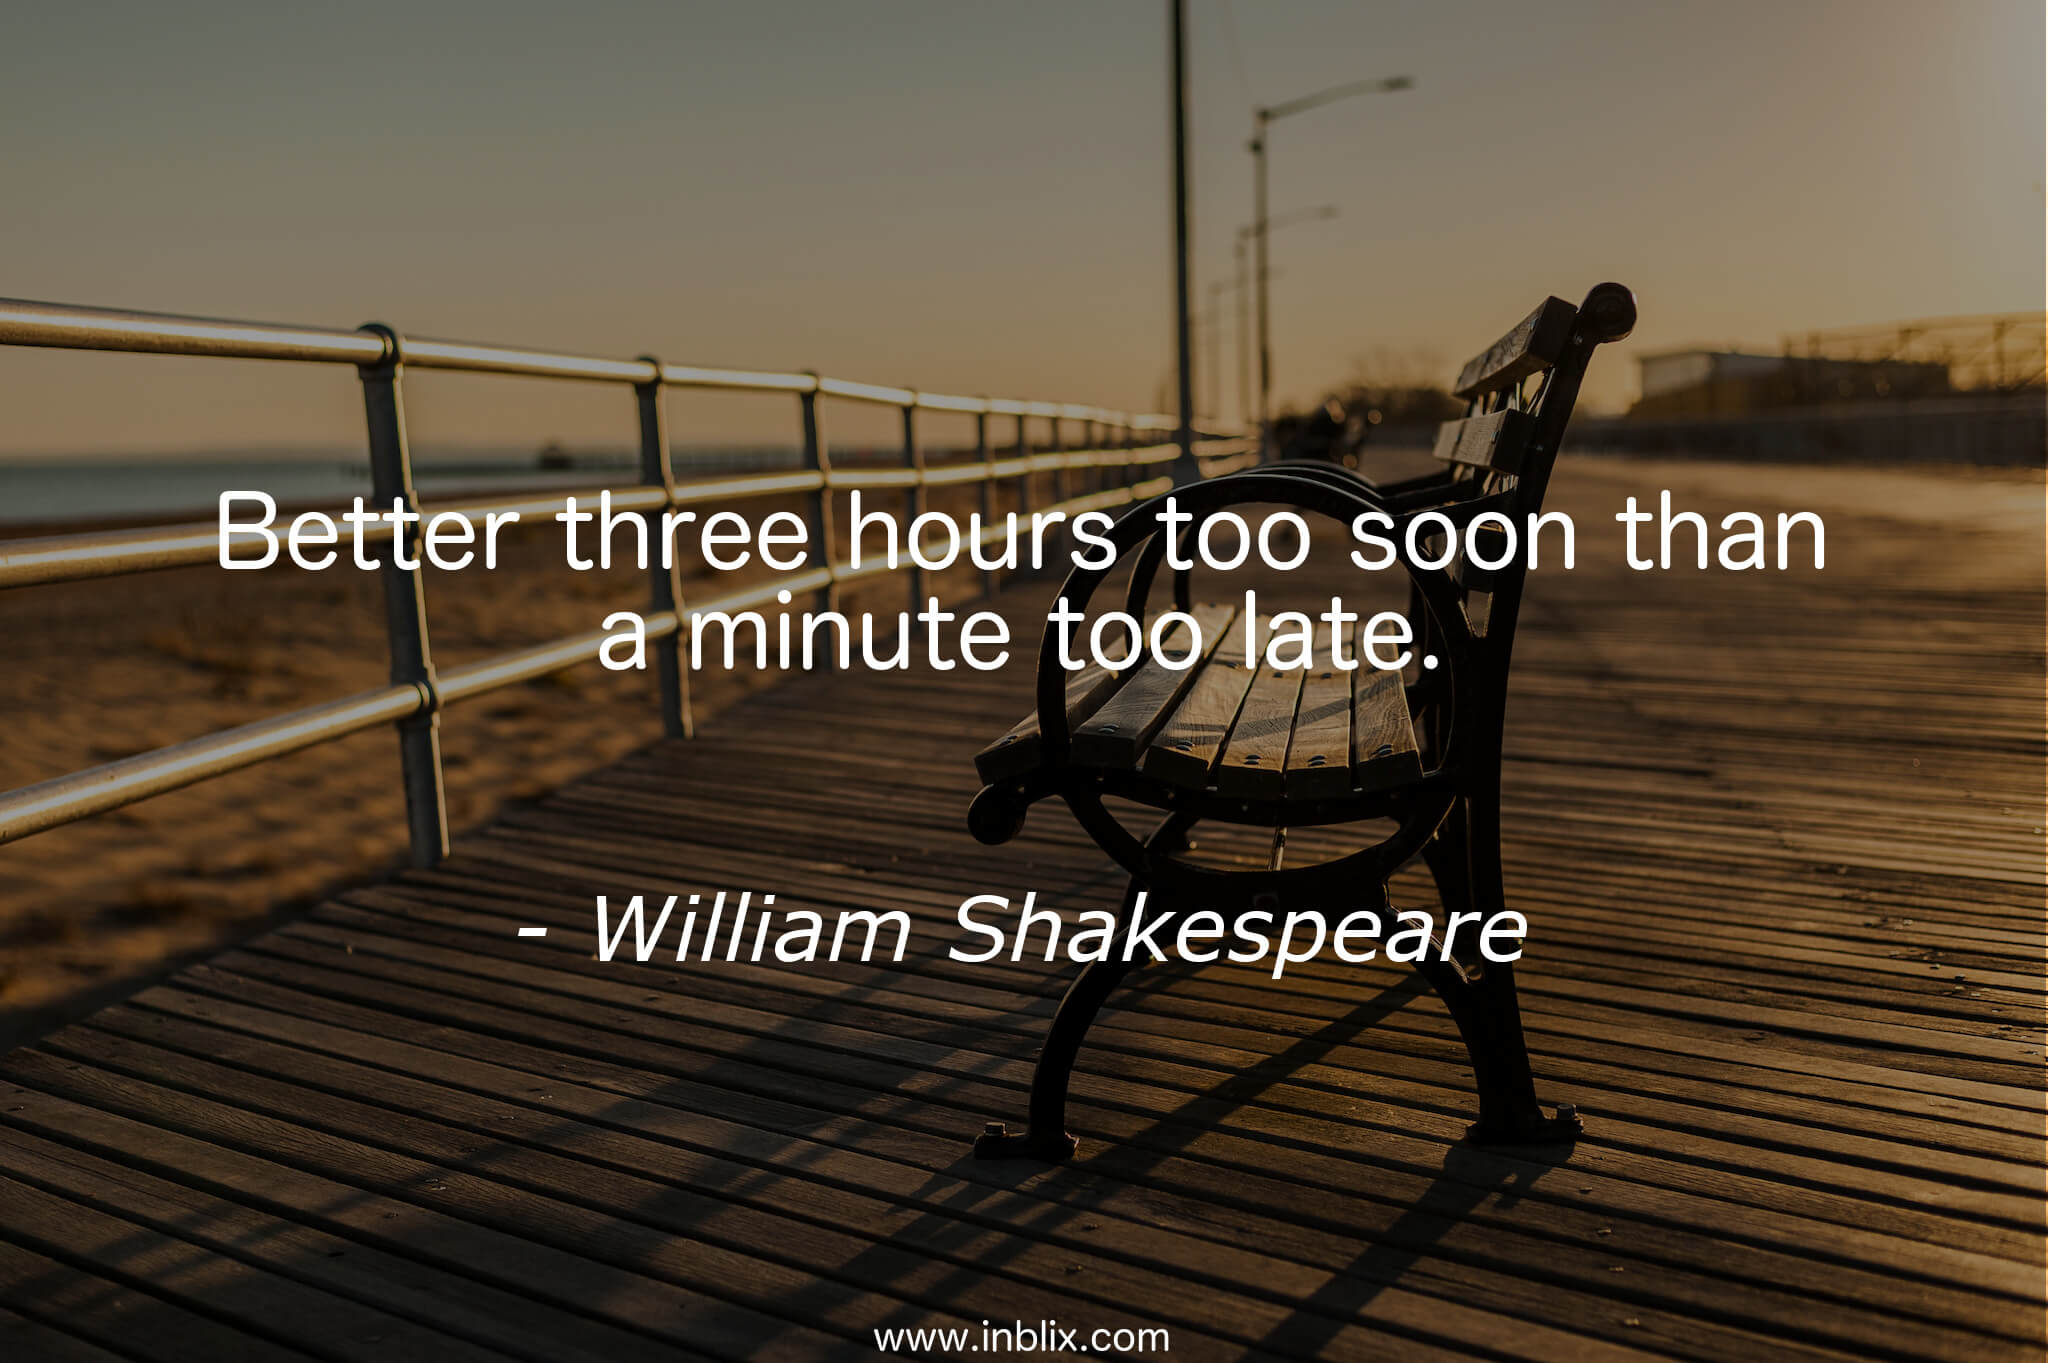 Better three hours too soon than a minute too late.